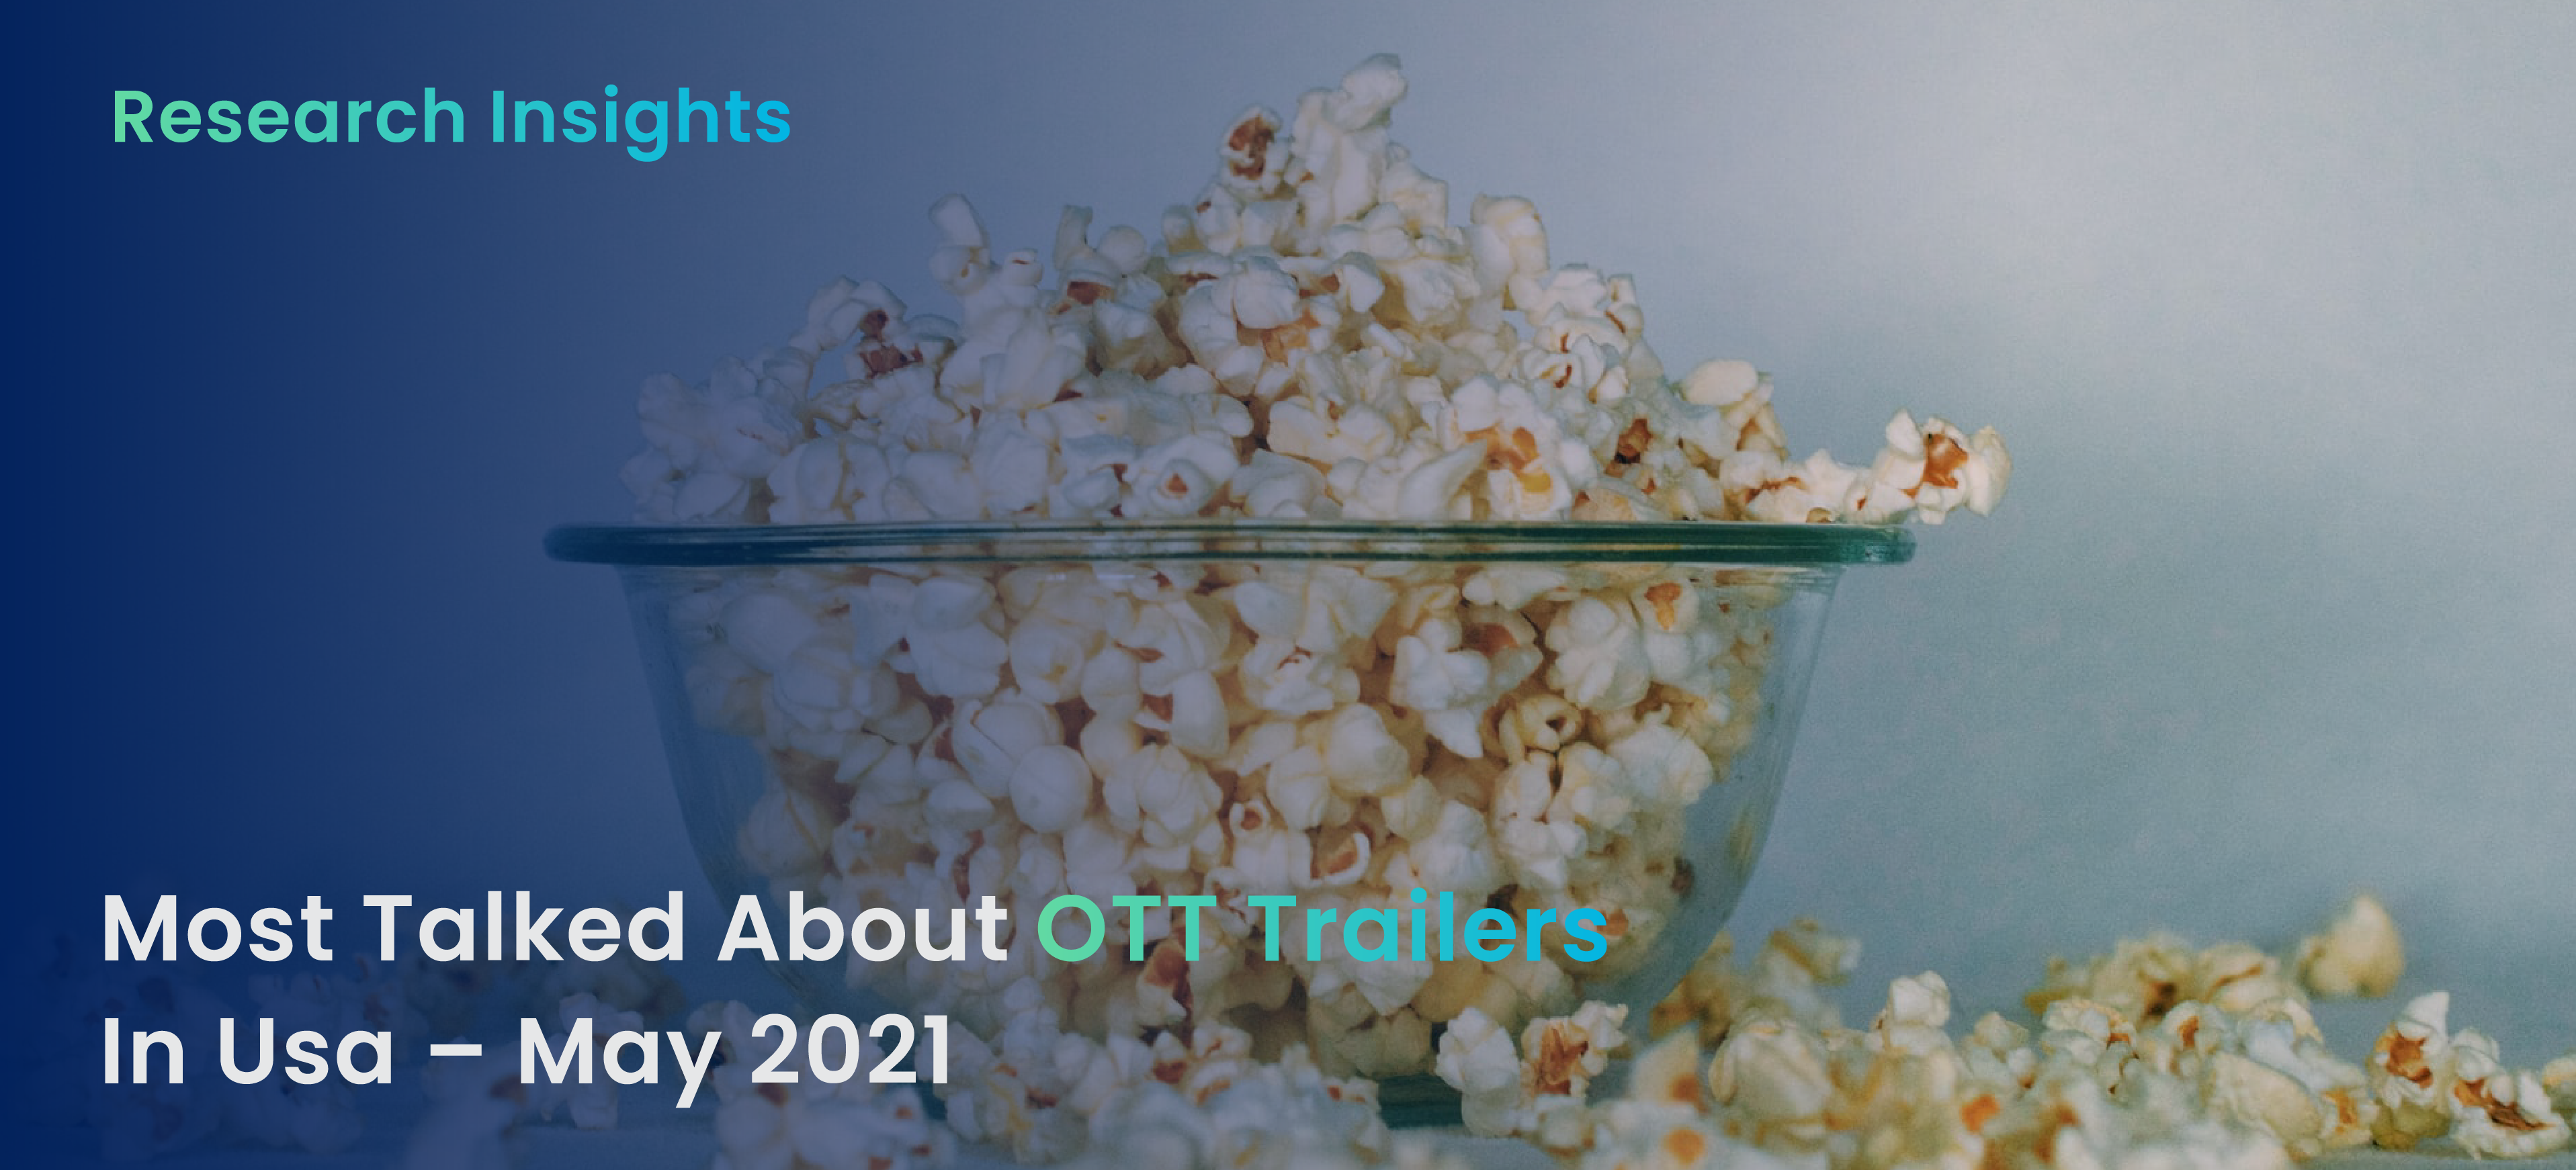 Most Talked About OTT Trailers in USA – May 2021